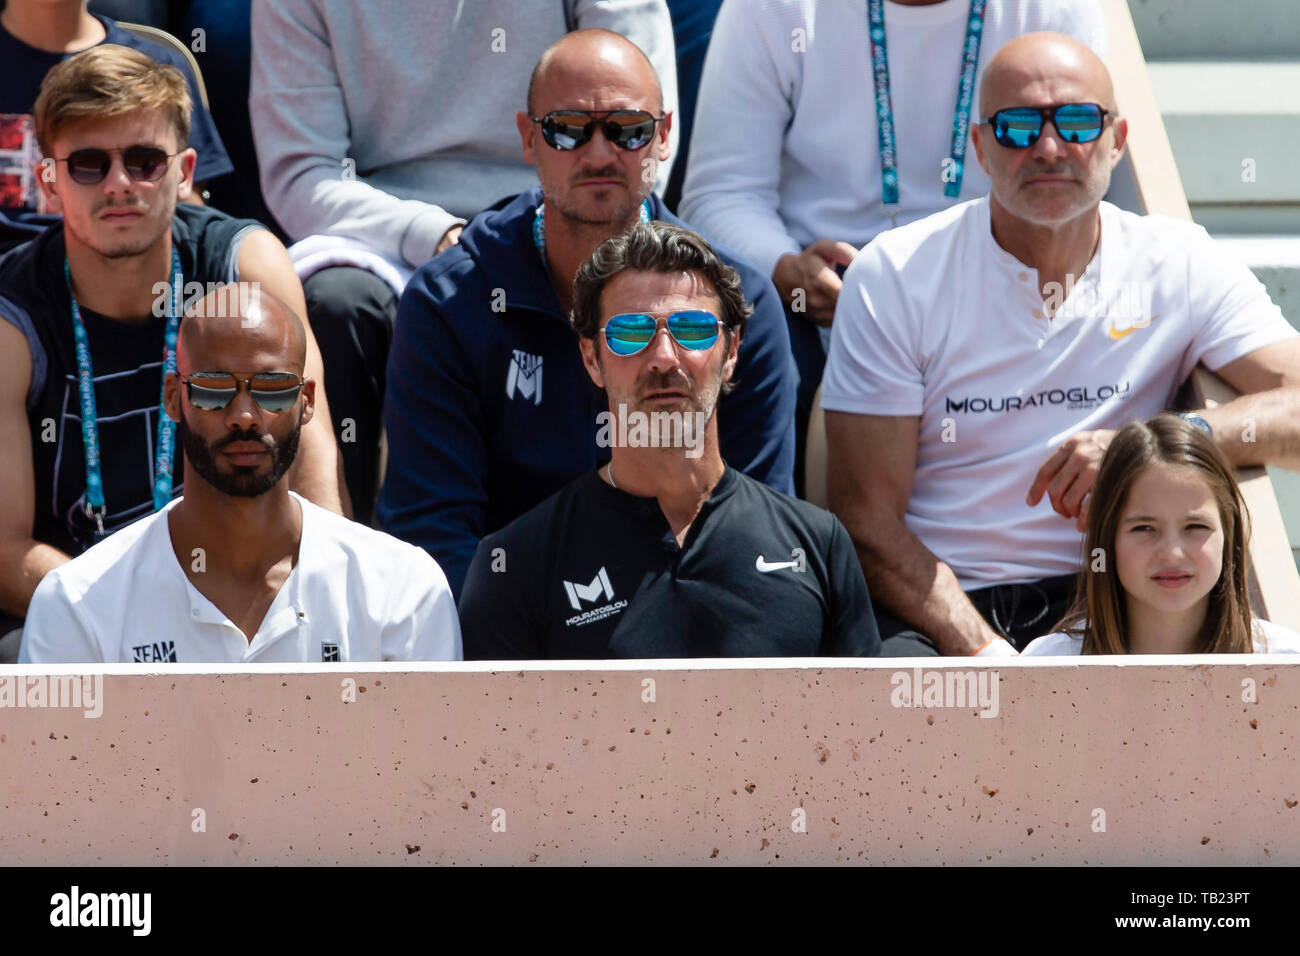 Paris France 29th May 2019 Patrick Mouratoglou Coach Of Stefanos Tsitsipas From Greece During The 2019